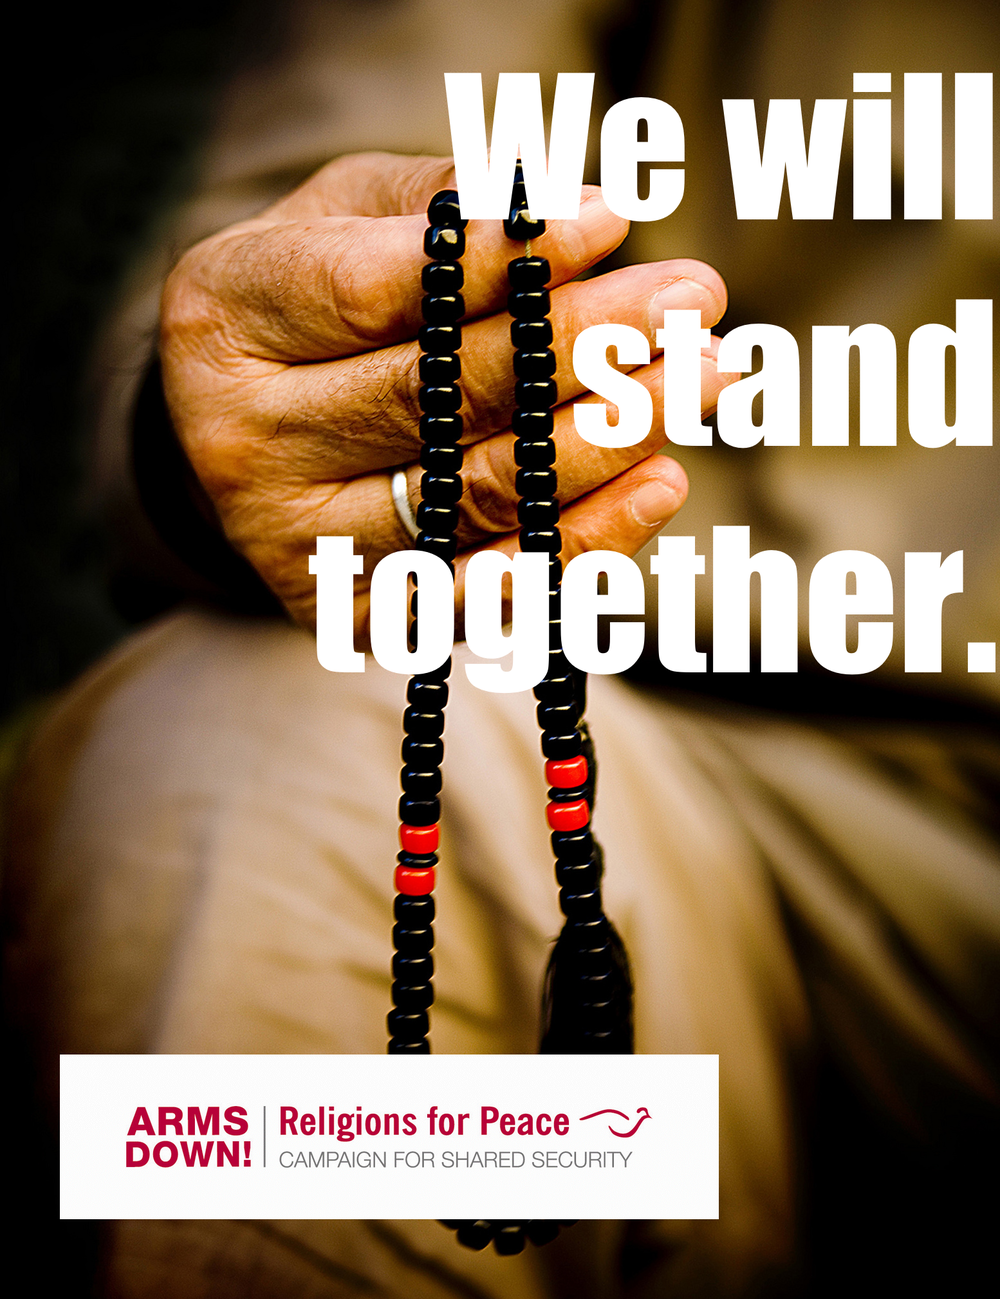 Image Source. Religions for Peace have denounced ISIS/ISIL for their abhorrent policies and actions in the region and asked for all to take a stand against this terrible organization.